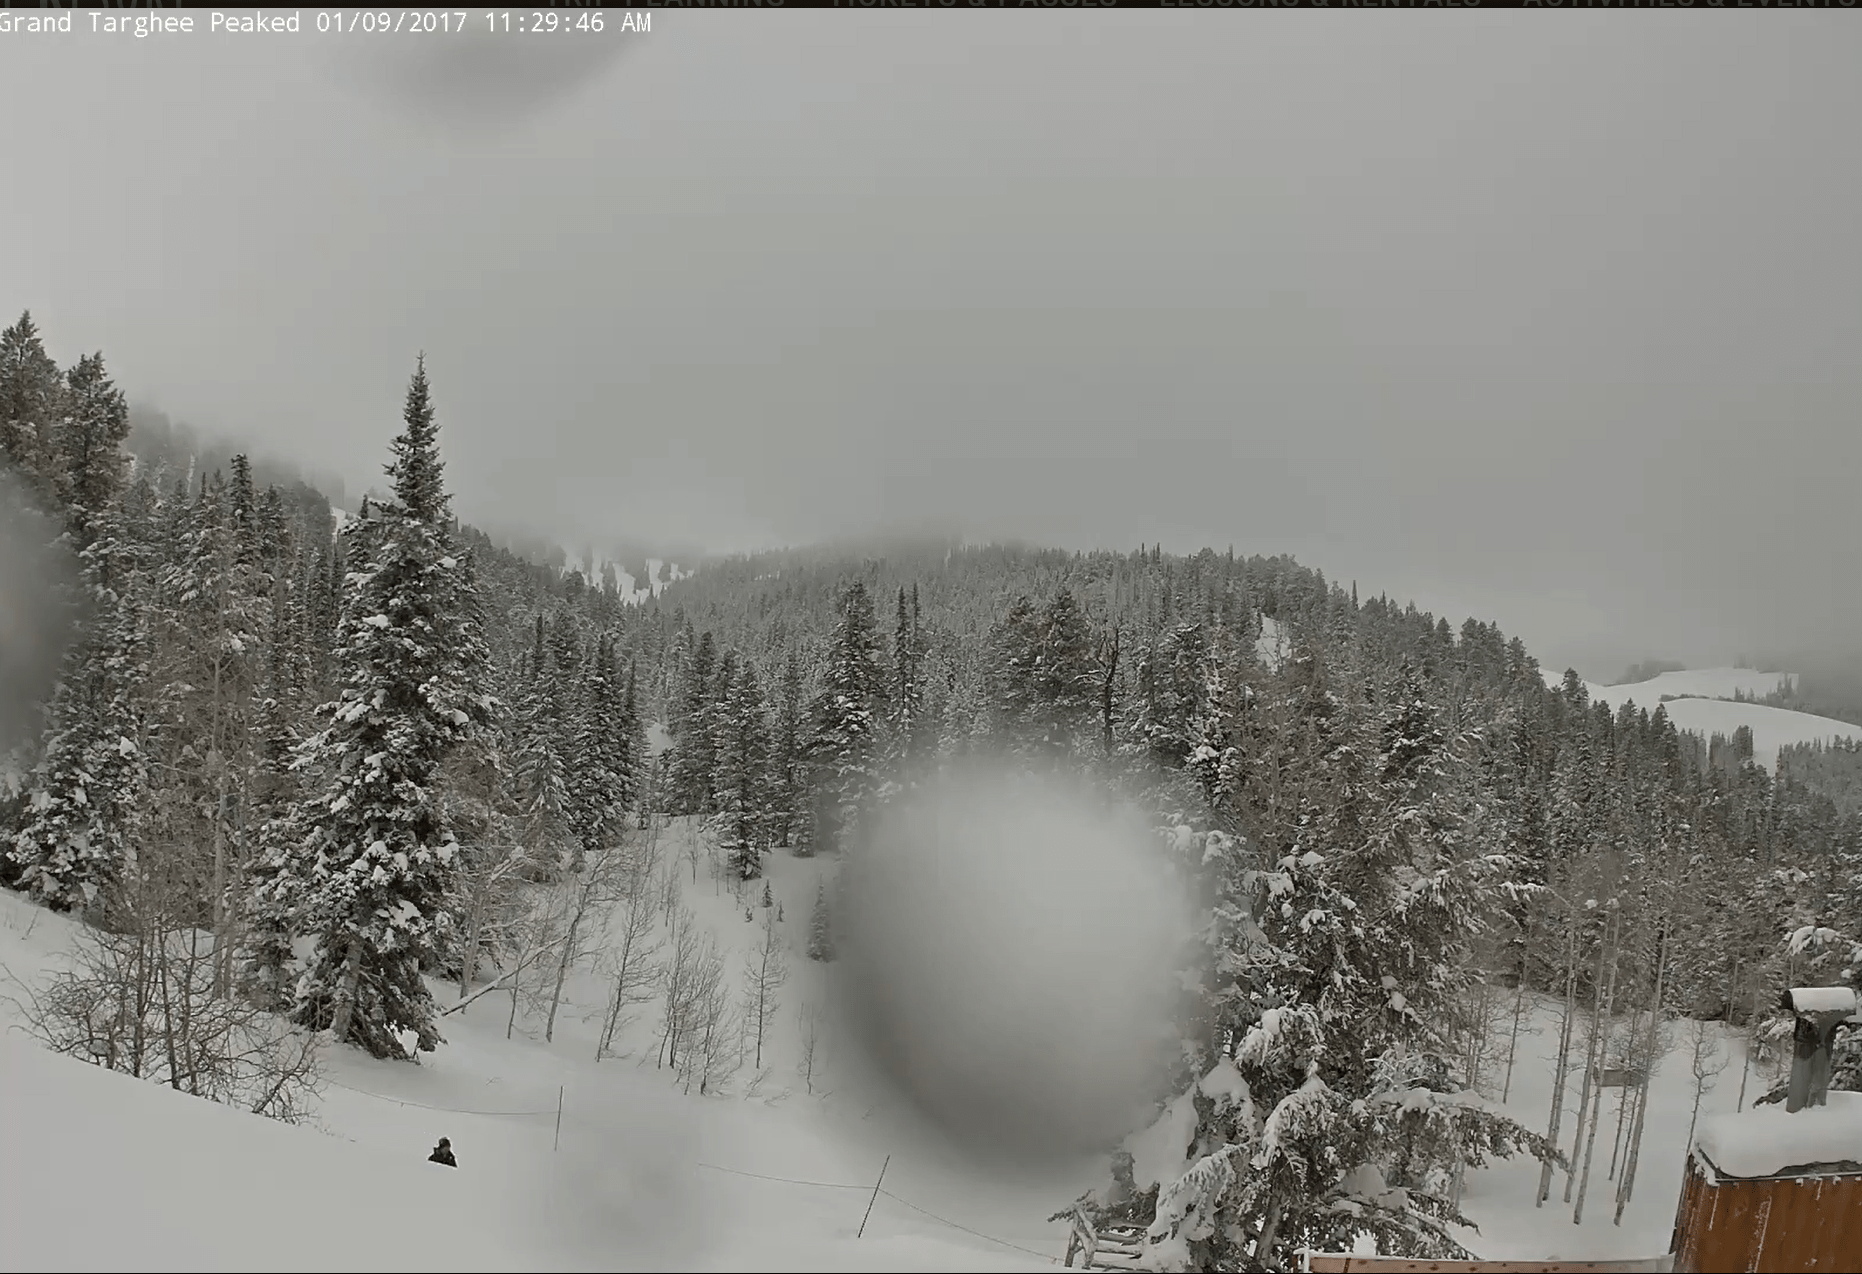 Grand Targhee Right Now. Image: Targhee Webcam